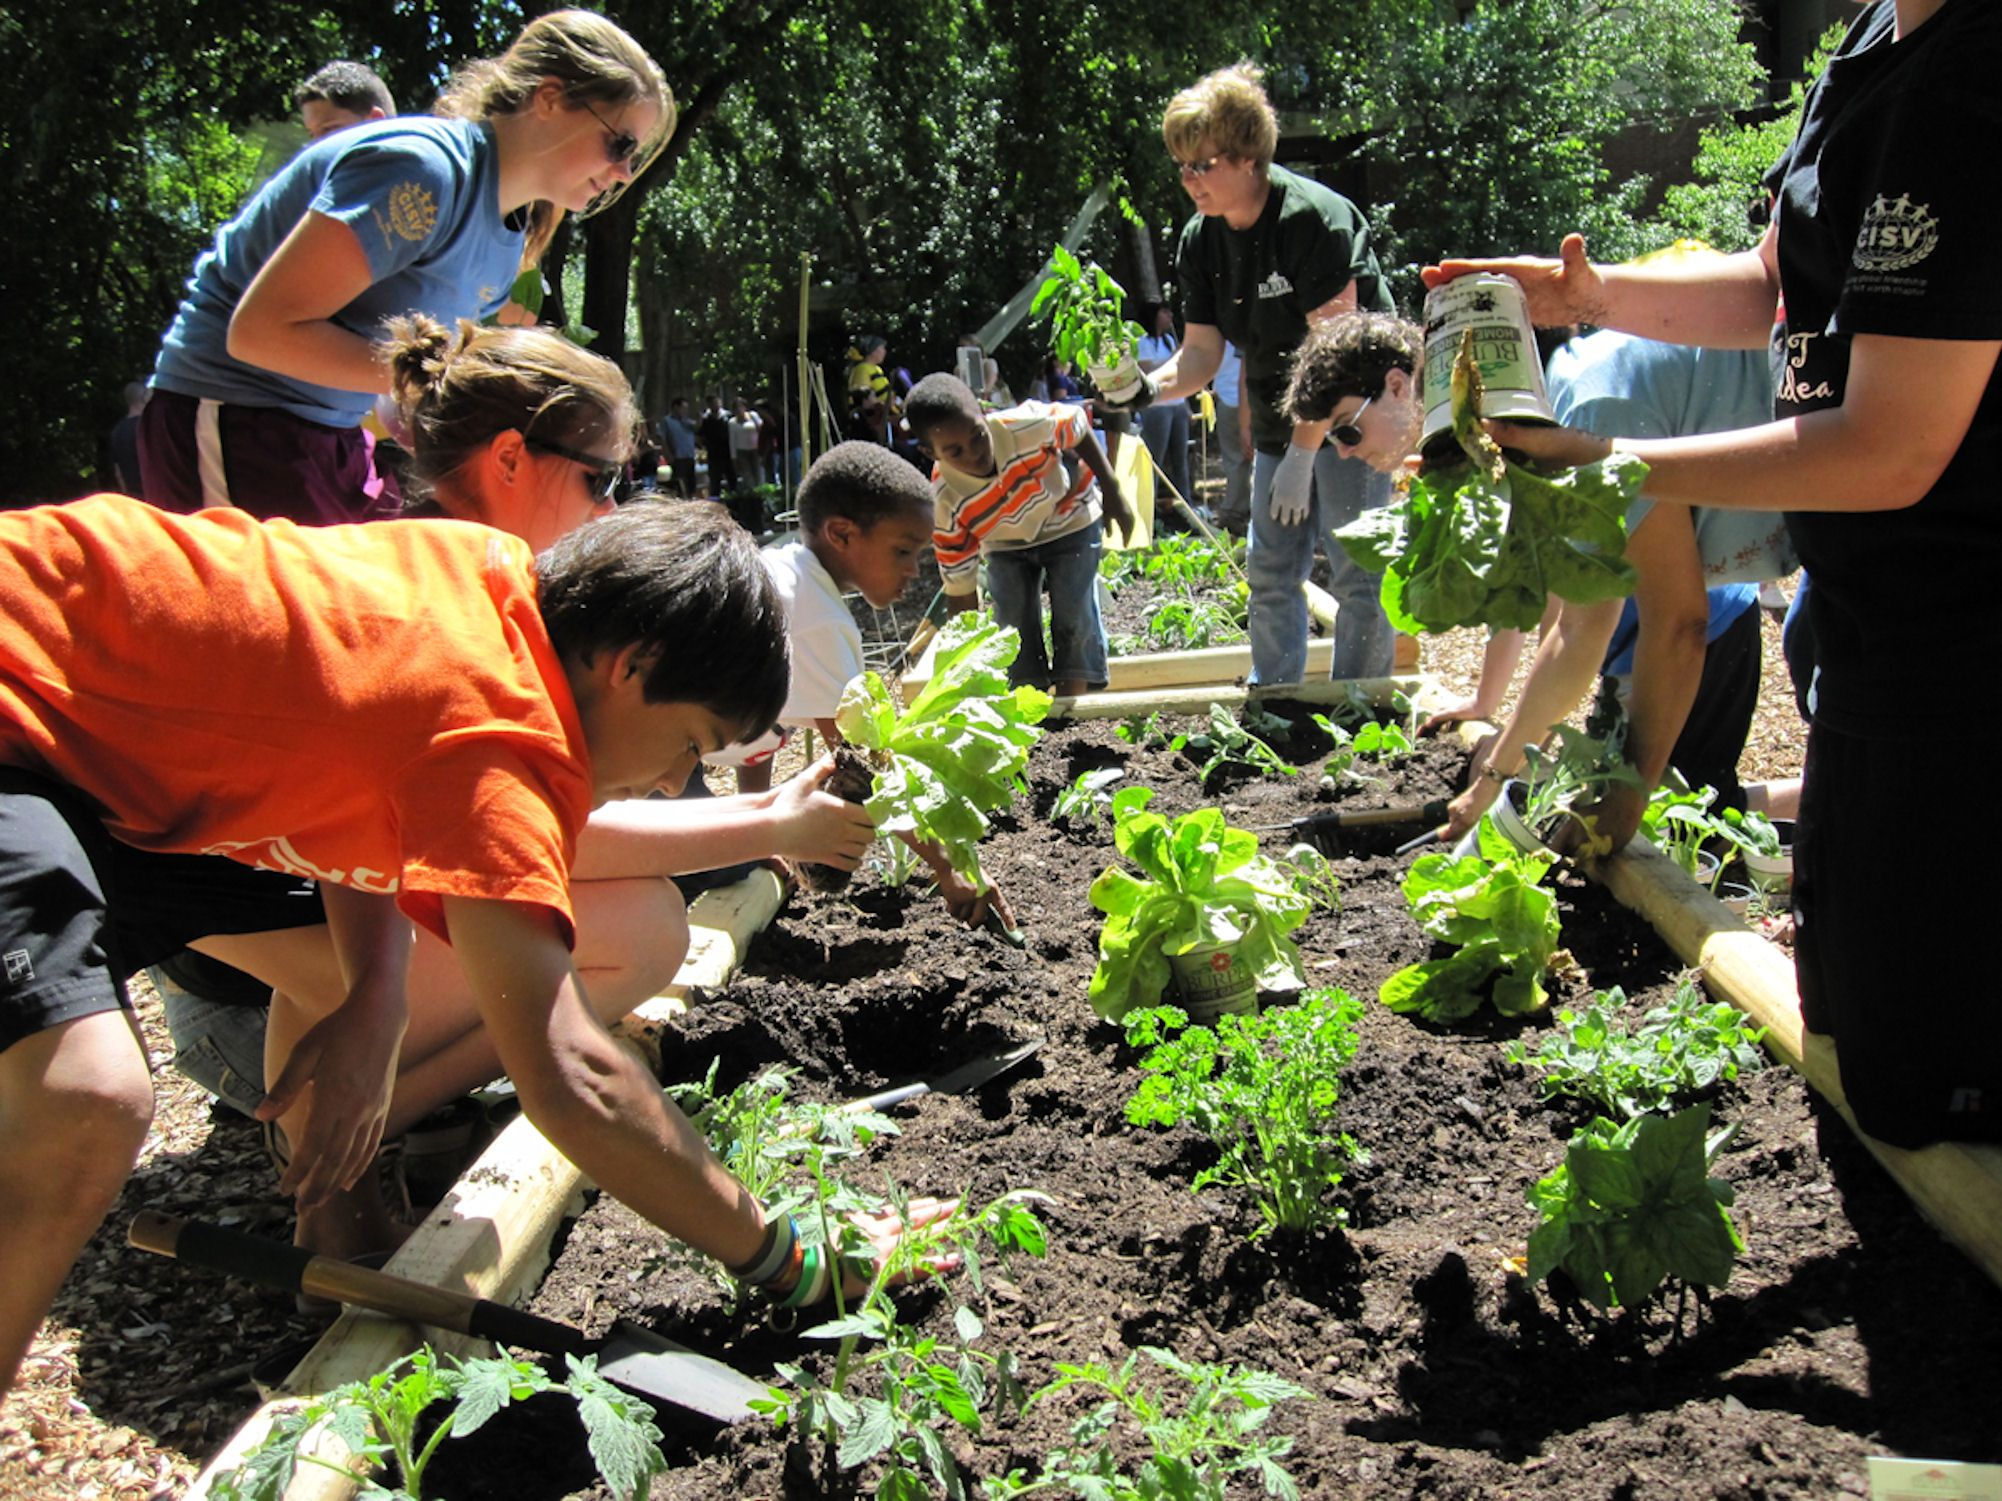 Kids in vegetable garden google search a grocery store for Gardening tips for kids